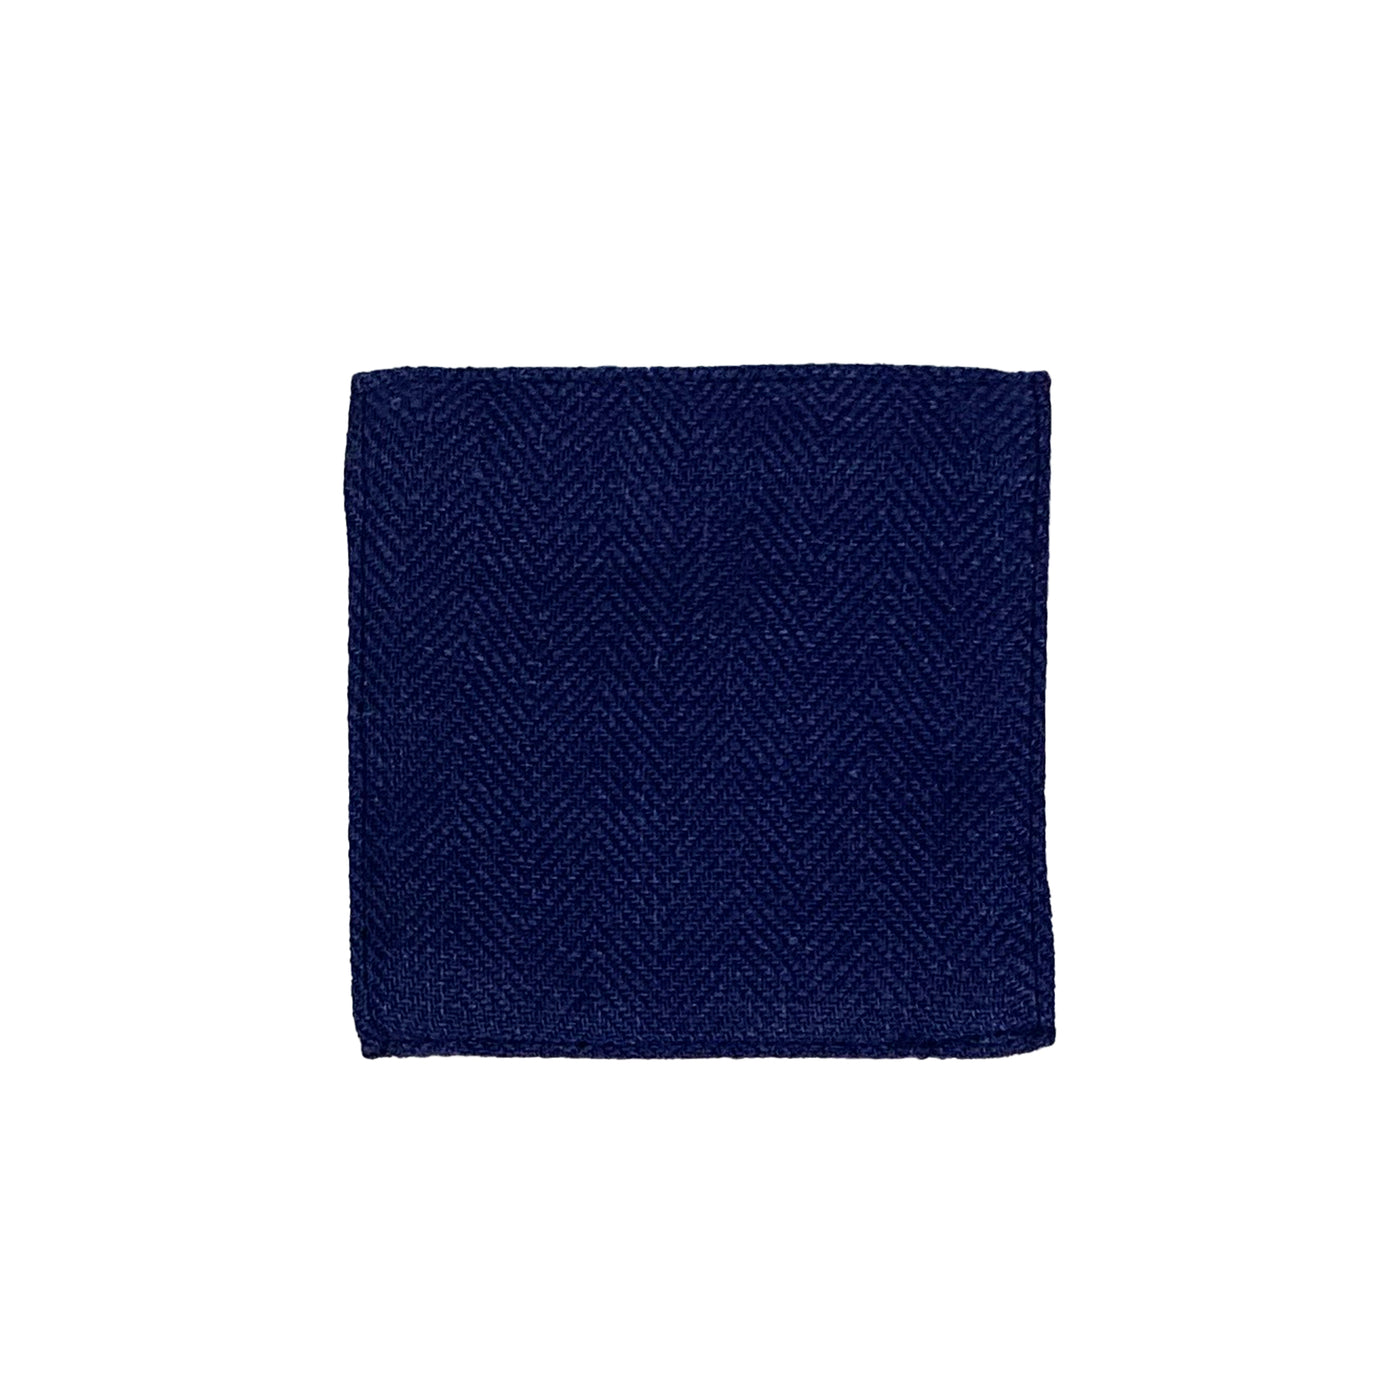 Linen Coaster - Blue Herringbone